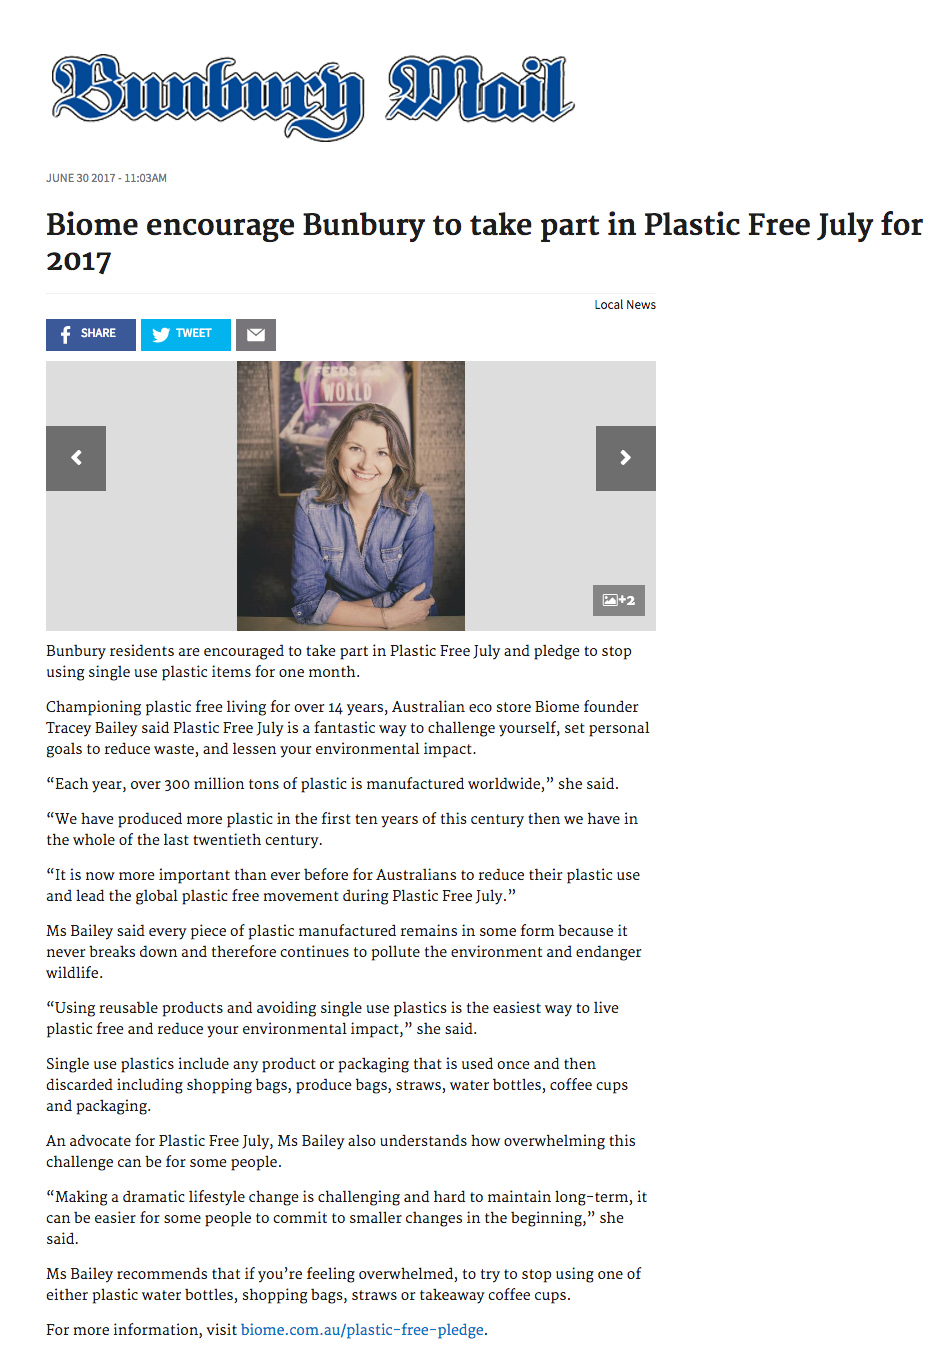 Biome encourage Bunbury to take part in Plastic Free July for 2017